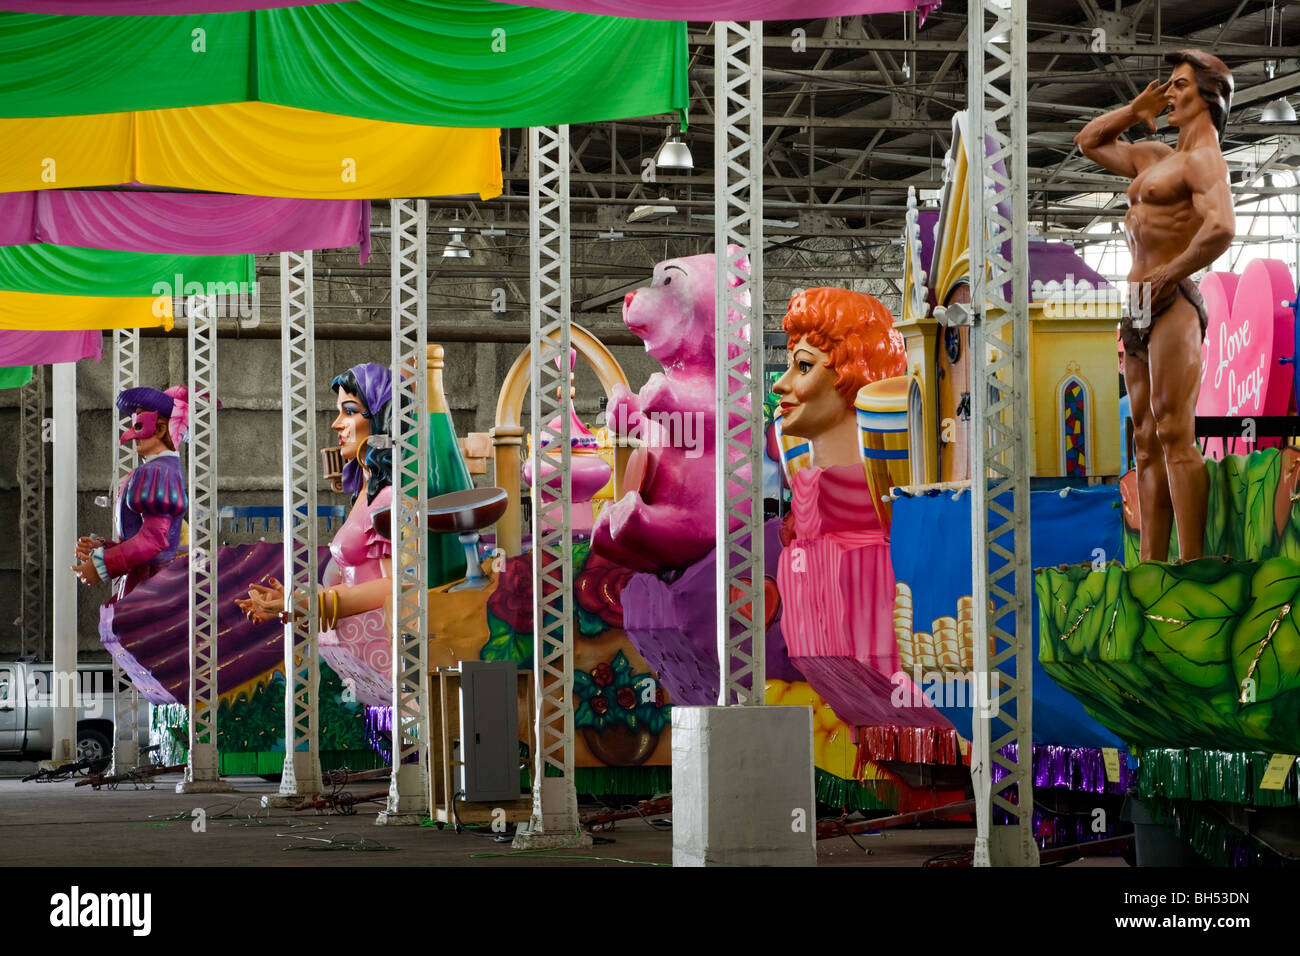 Floats at Mardi Gras World, New Orleans, Louisiana - Stock Image